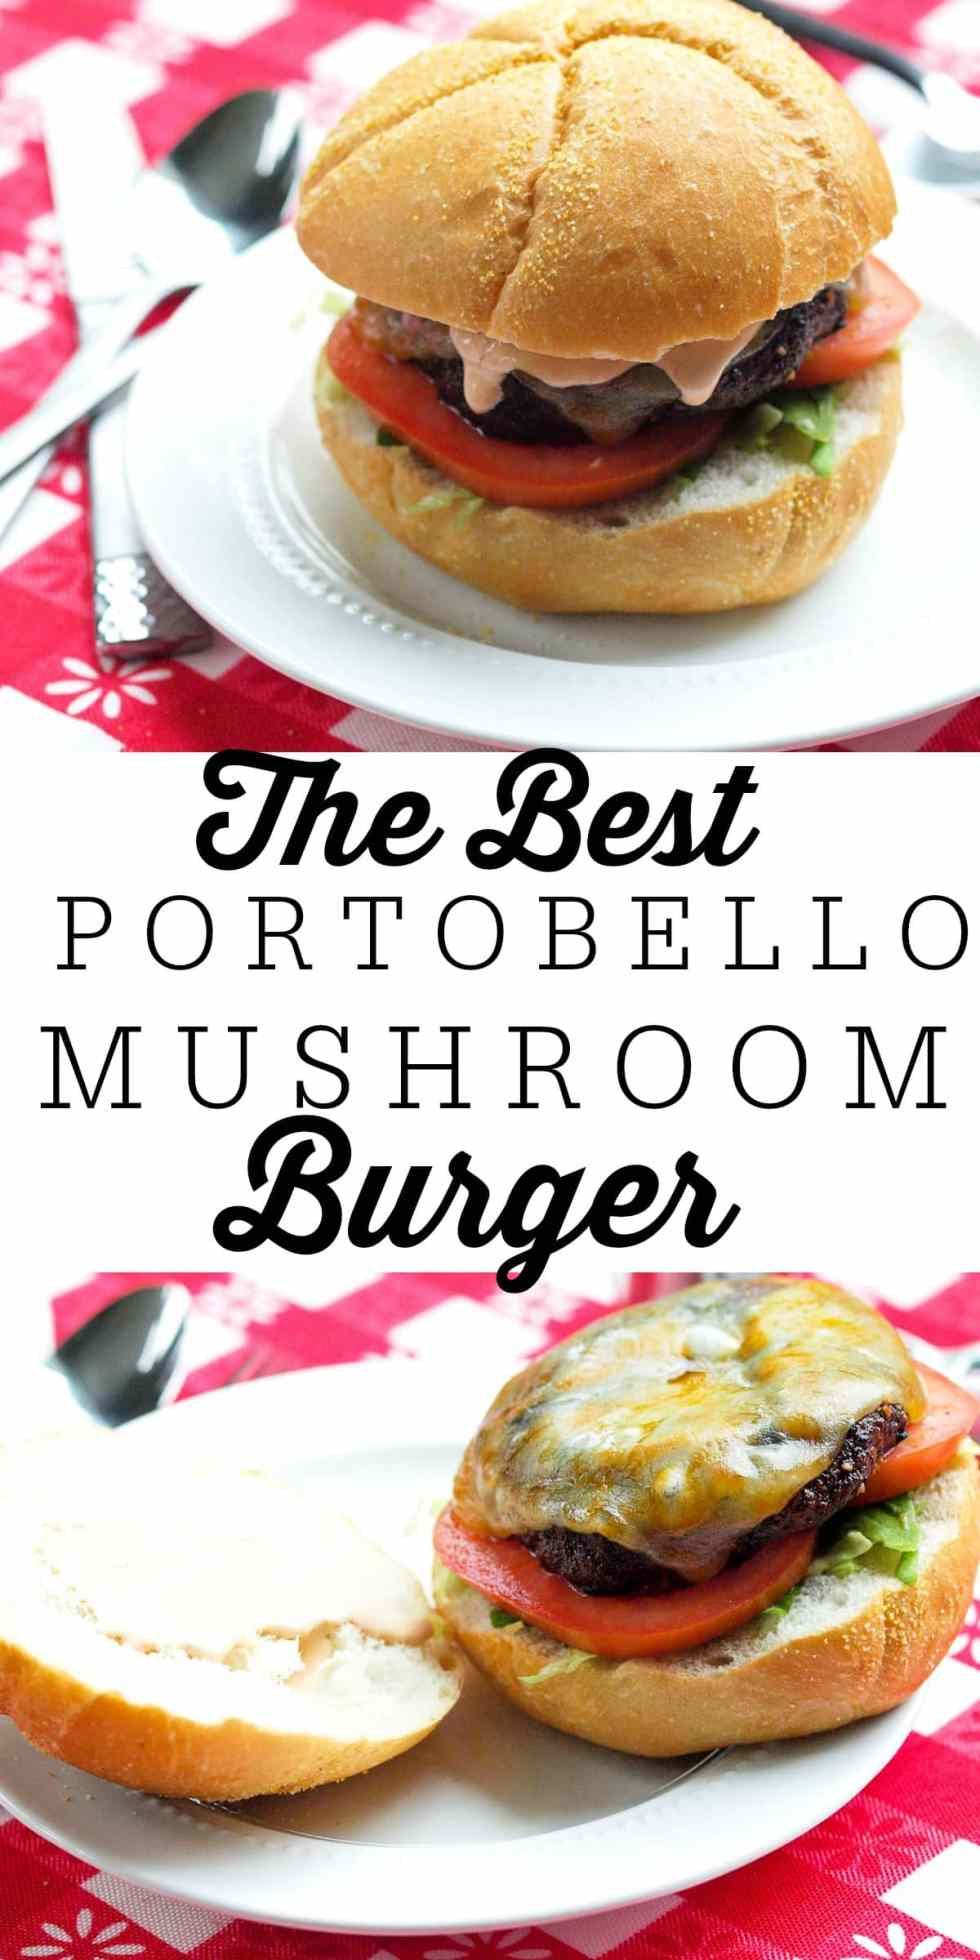 Perfect for summer grilling! This Portobello Mushroom burger is a great grill recipe and even the meat lovers love this vegetarian burger! You'll be making this grilled Portobello Mushroom recipe all summer long!